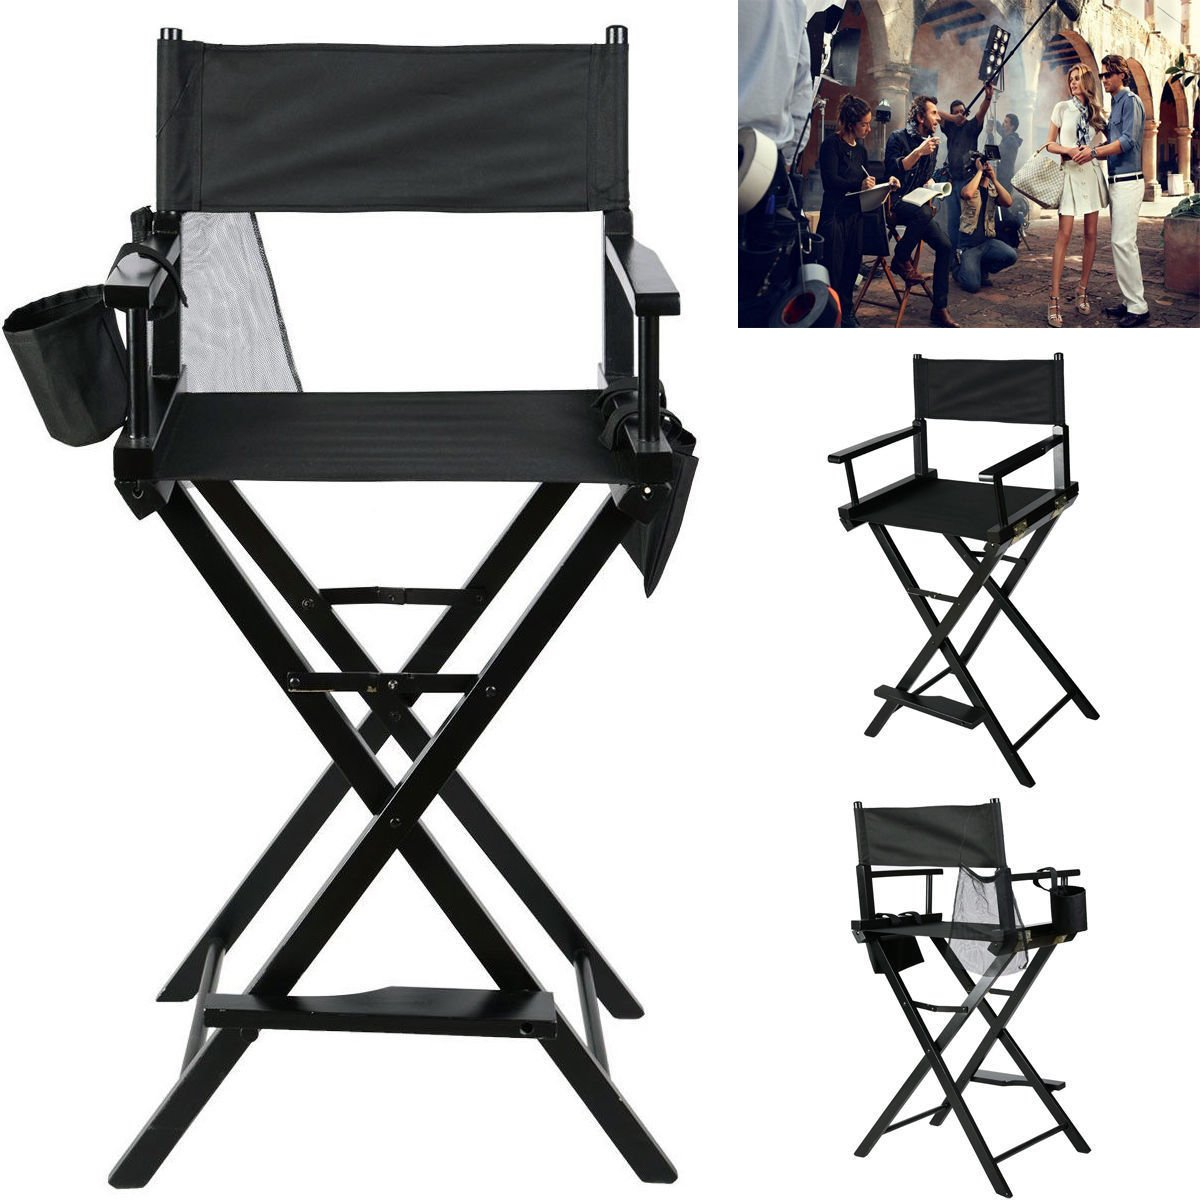 Foldable Makeup Director Chair, Tall Artist Professional Directors Chair with Storage Bag Cup Holder-Black Yosooo